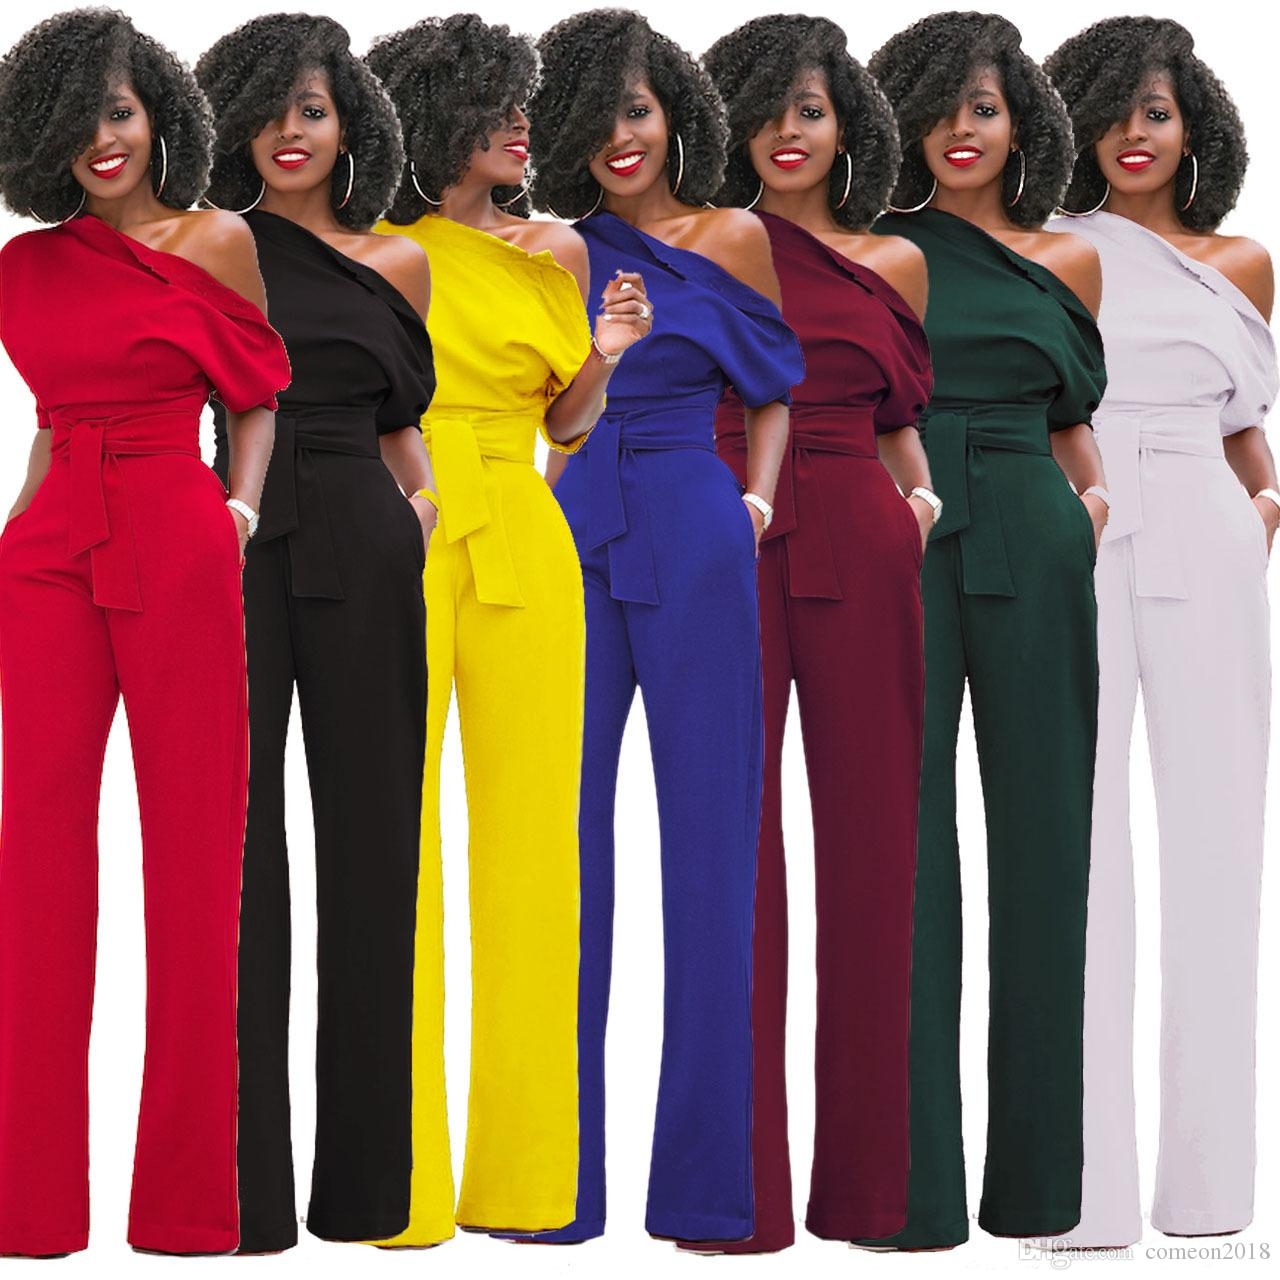 97eb1899320 2019 Womens Clothes Autumn Round Collar Casual Lady Long Sleeve Off  Shoulder Jumpsuit Plus Size Wide Leg Pants Pure Solid Color Ladies Rompers  From ...